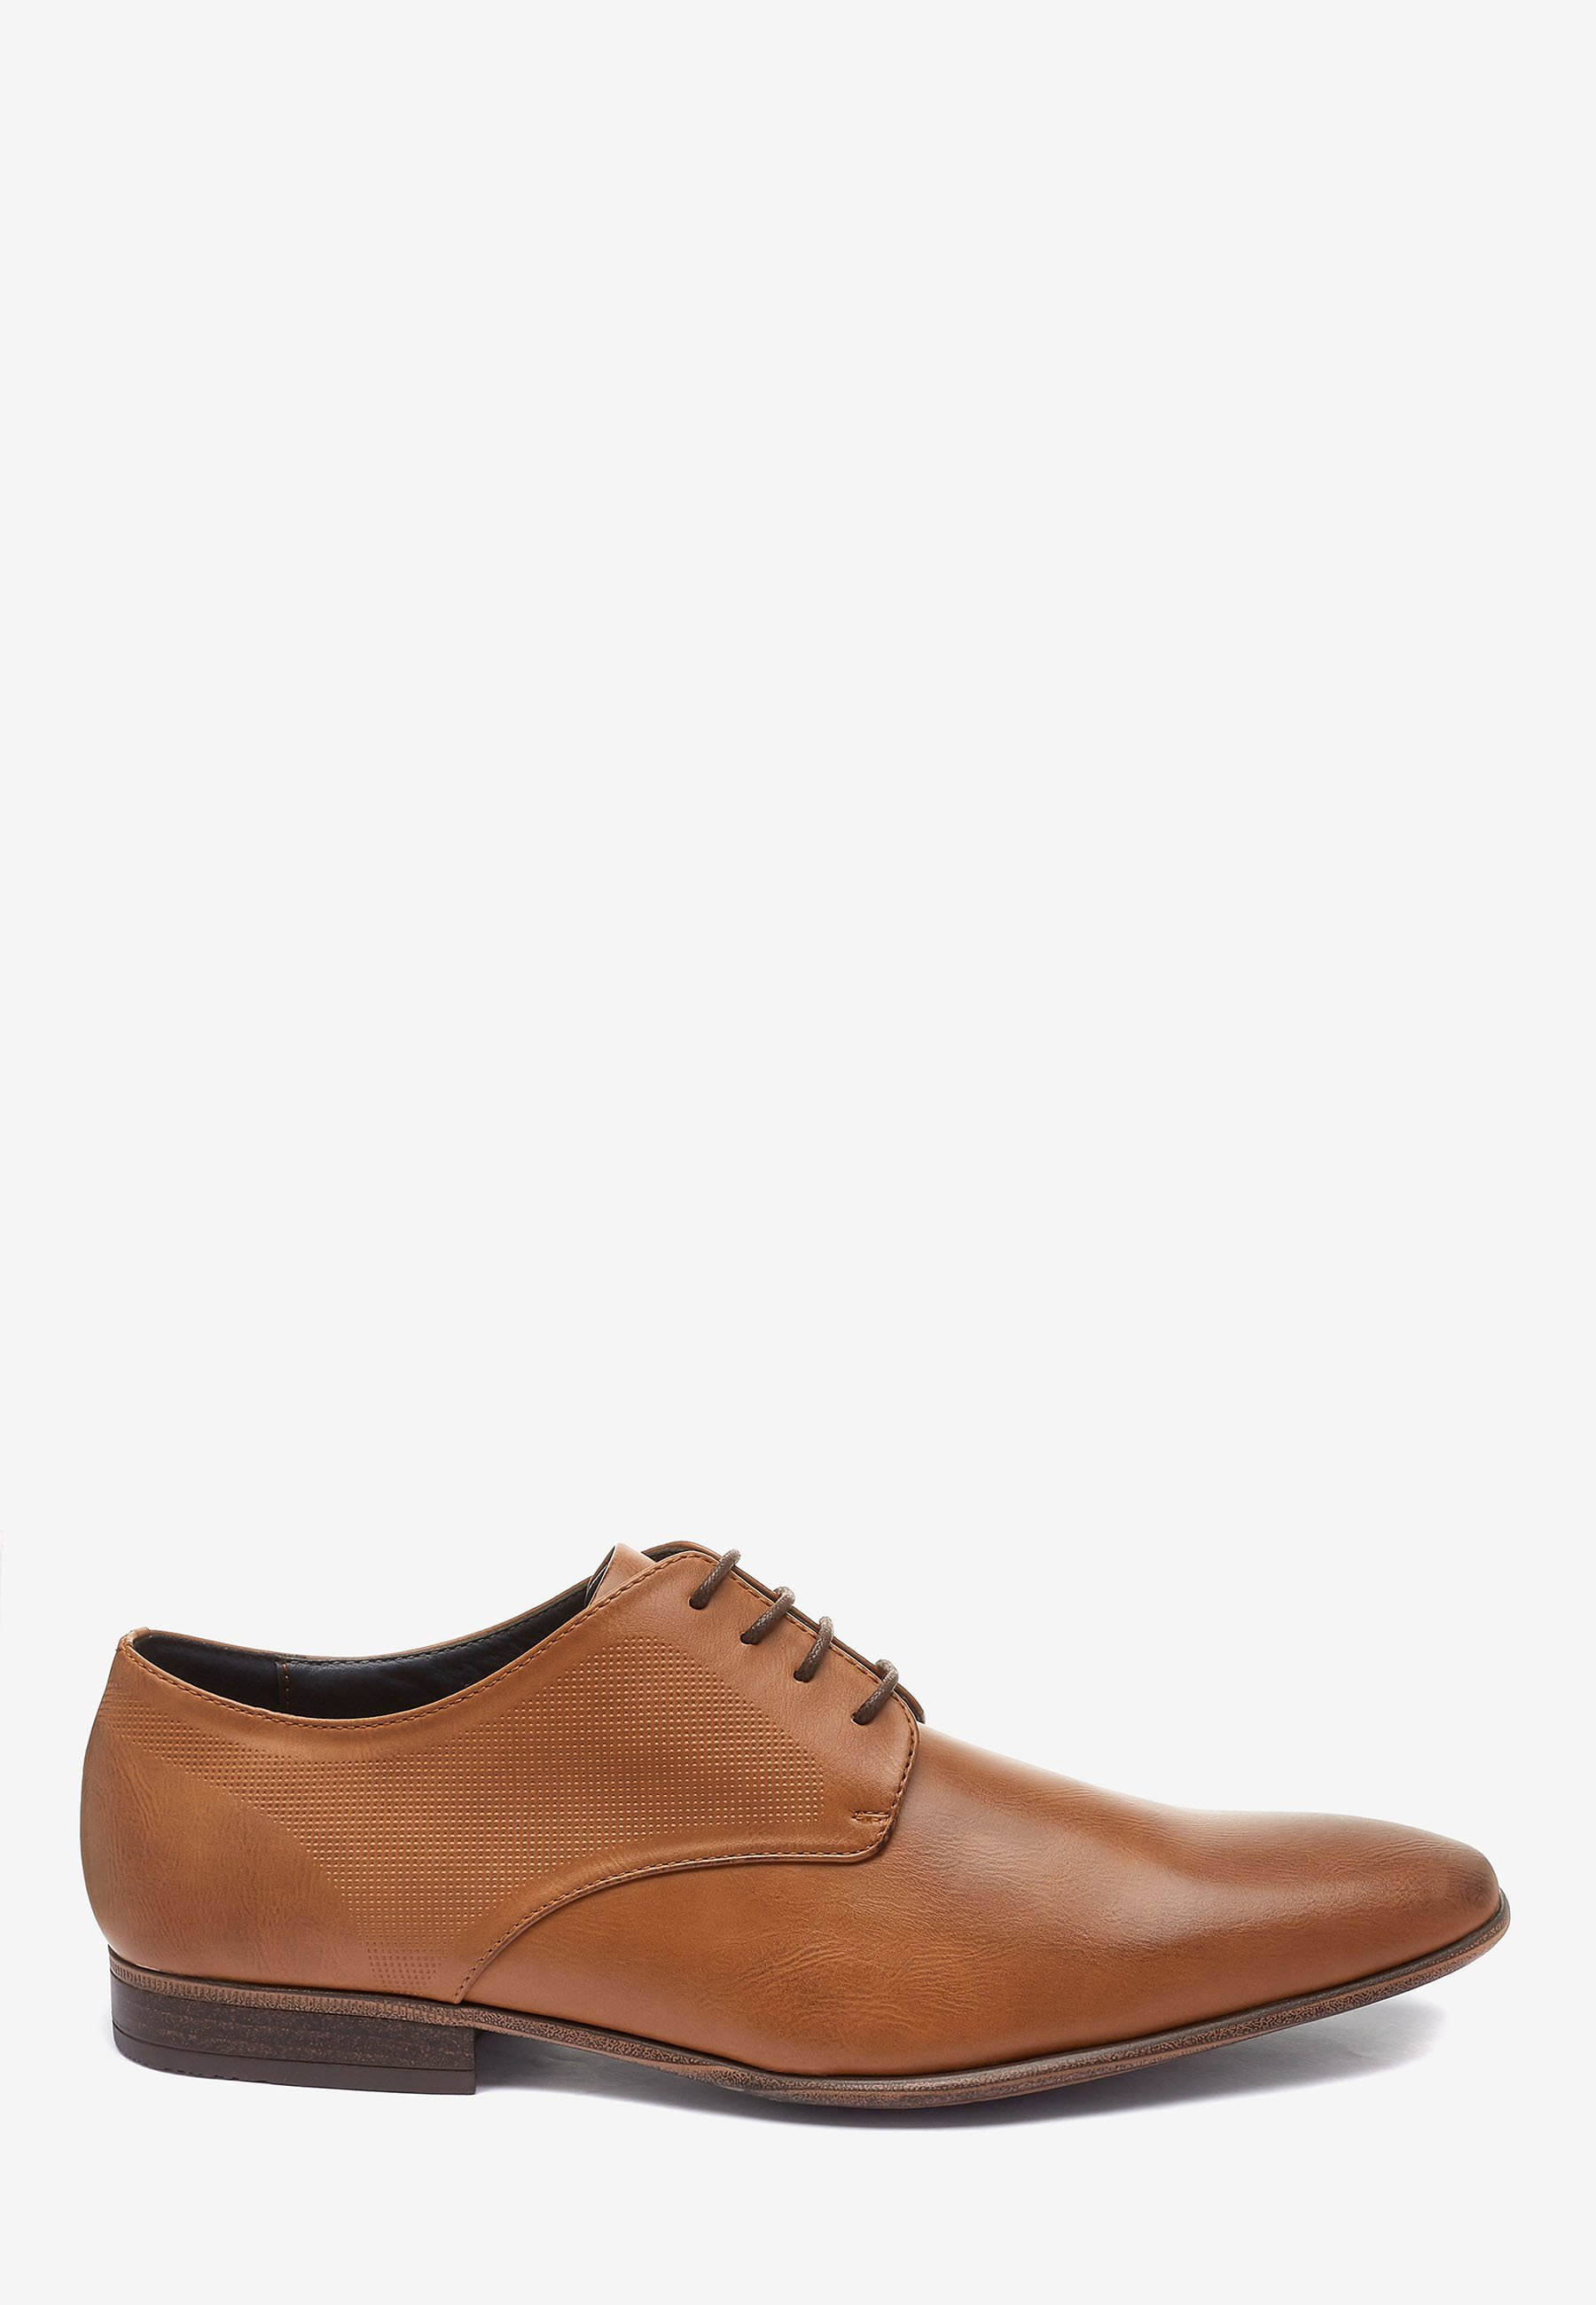 Next TAN TEXTURED DERBY SHOE - Eleganta snörskor - brown/brun - Herrskor aQSSq